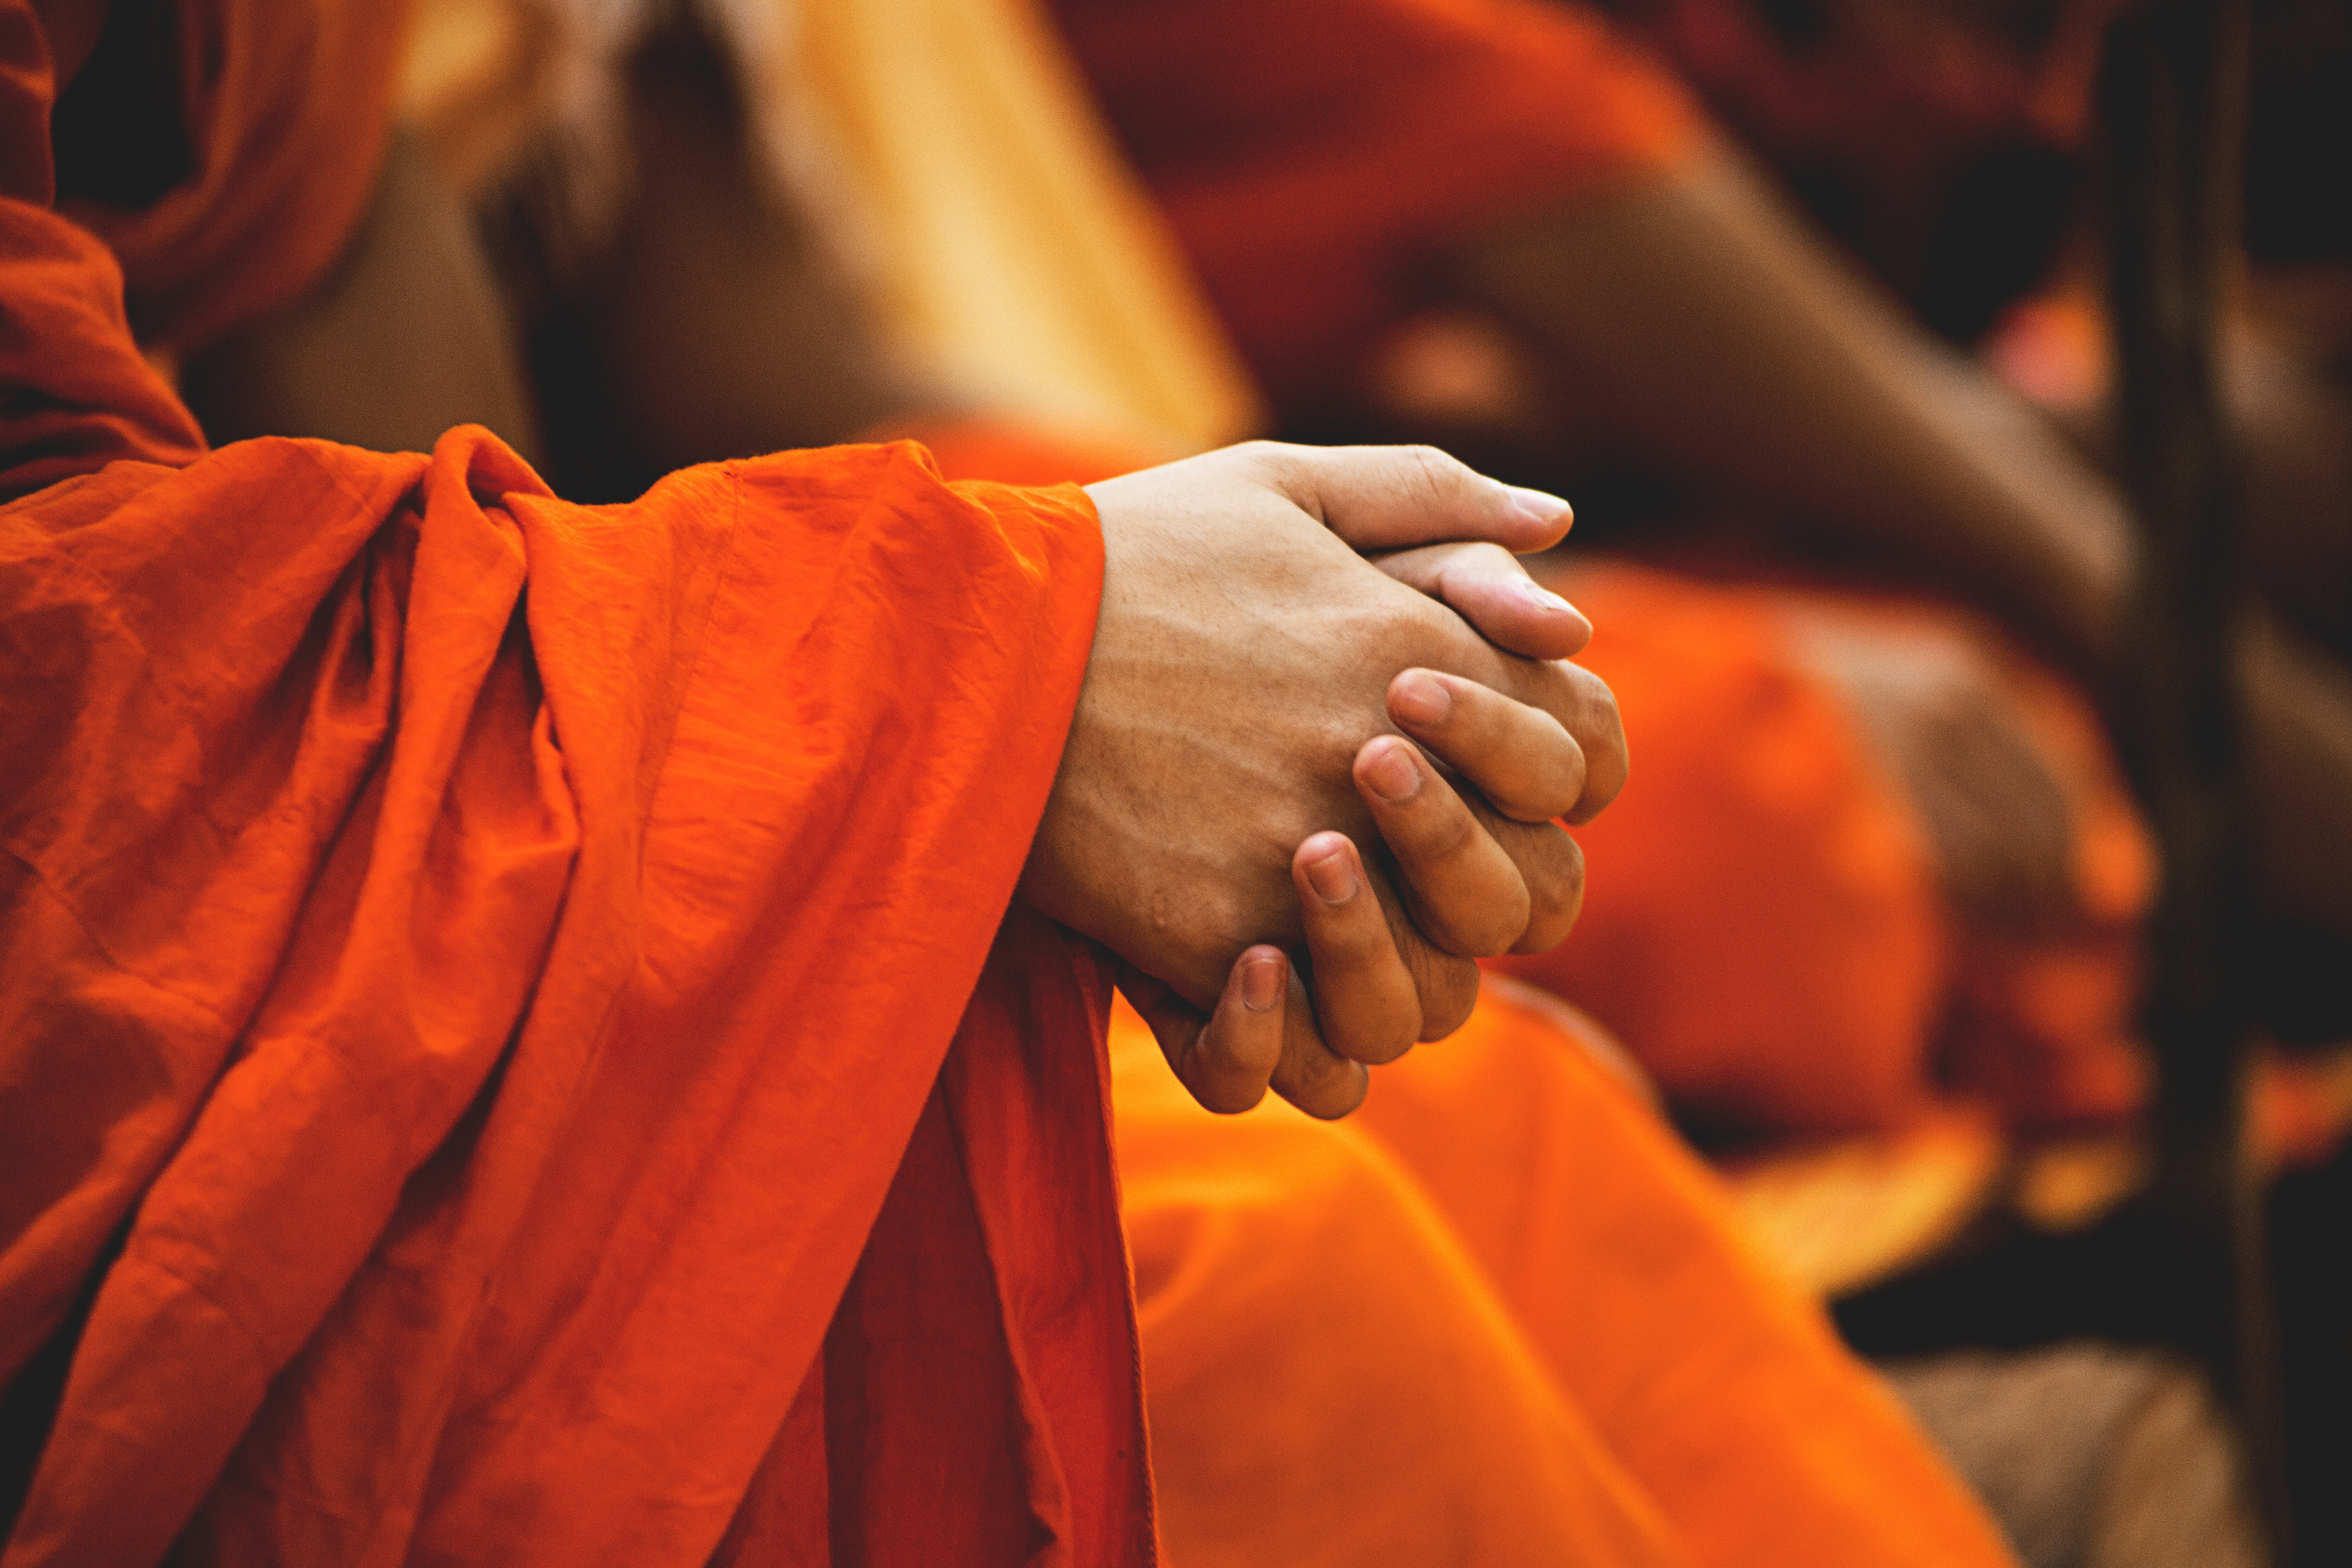 peoples buddhist personals Welcome to buddhism dating, the number one dating site for singles who seek for the deeper values in life yes, we are grateful to meet people like you singles who are dedicated to find their inner peace and the core of their being.